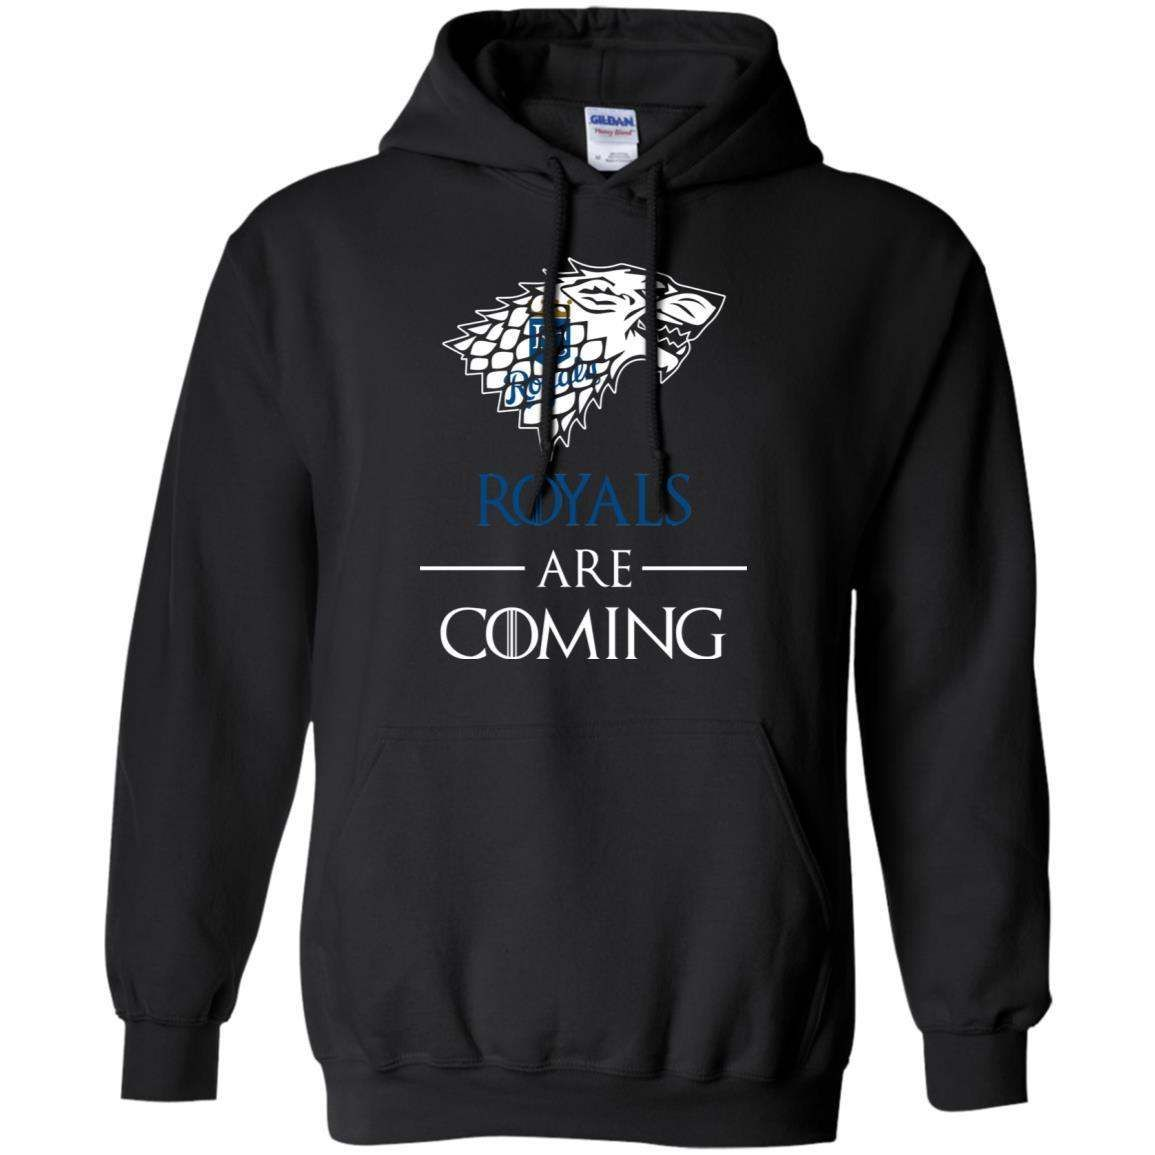 Kansas City Royals stark house are coming funny Game of Thrones shirt Hoodie